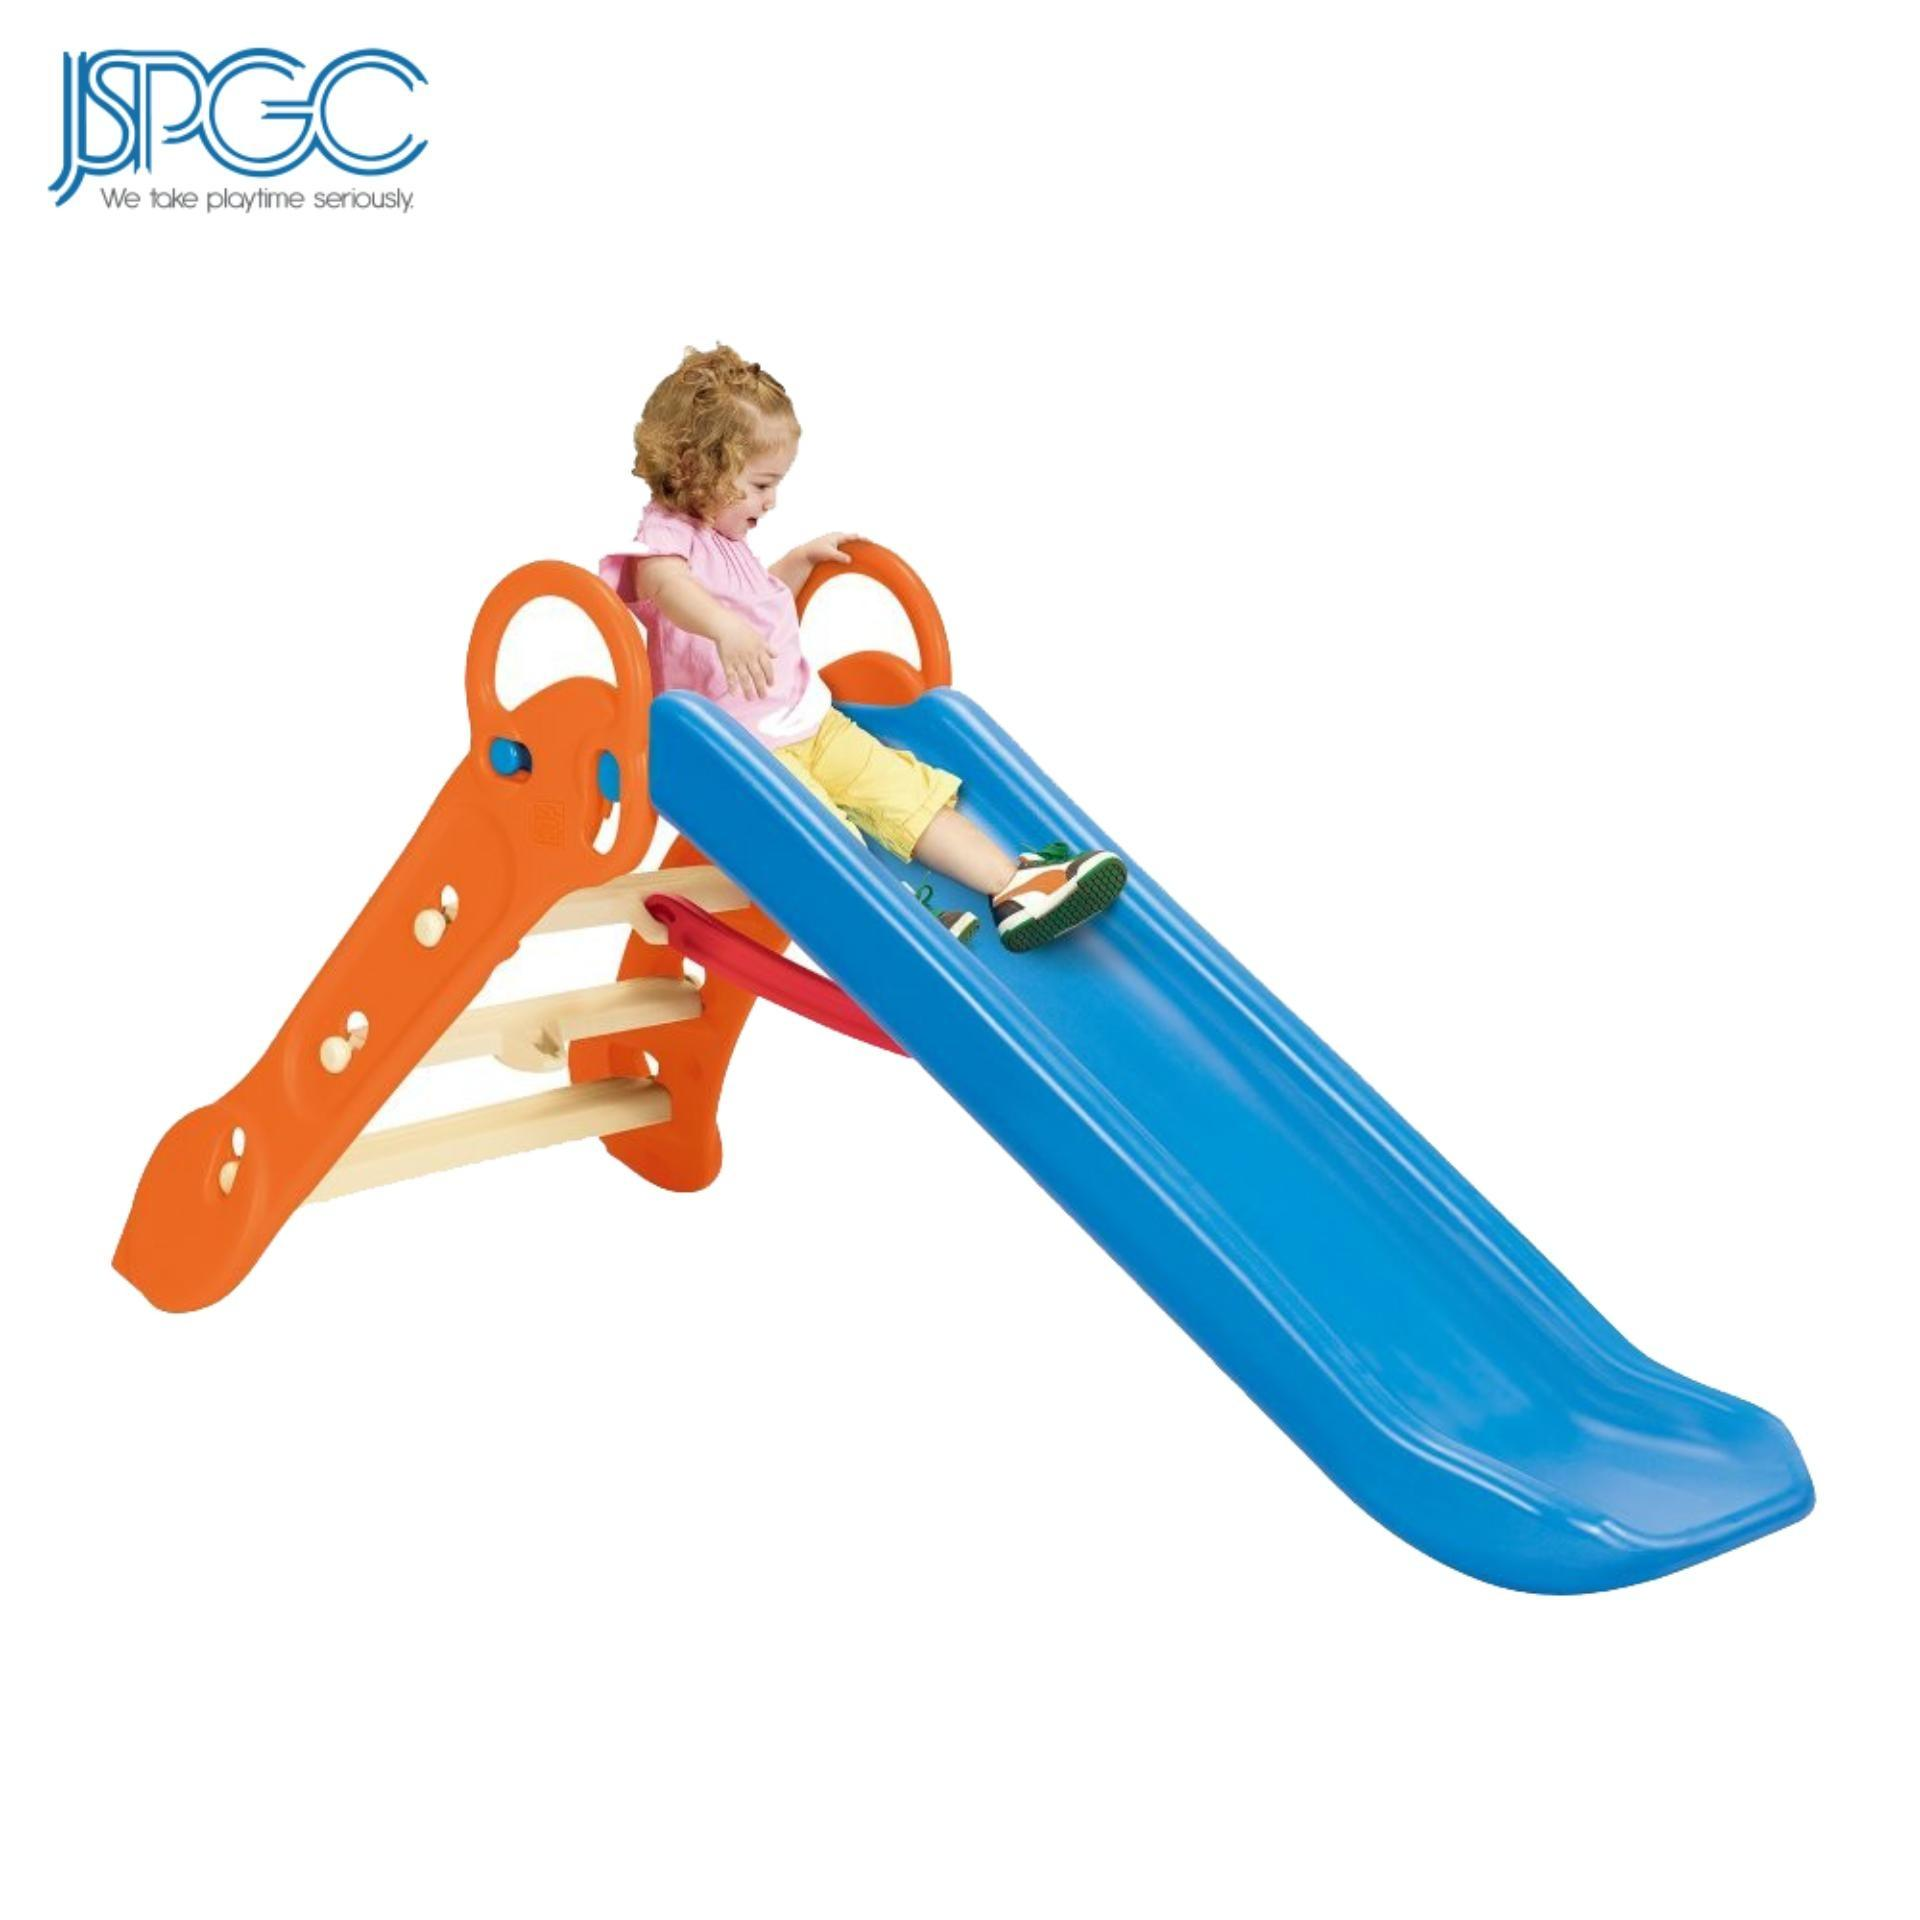 Gnu Qwikfold Maxi Slide For Kids (5ft) By Js Philippines Global Corp..